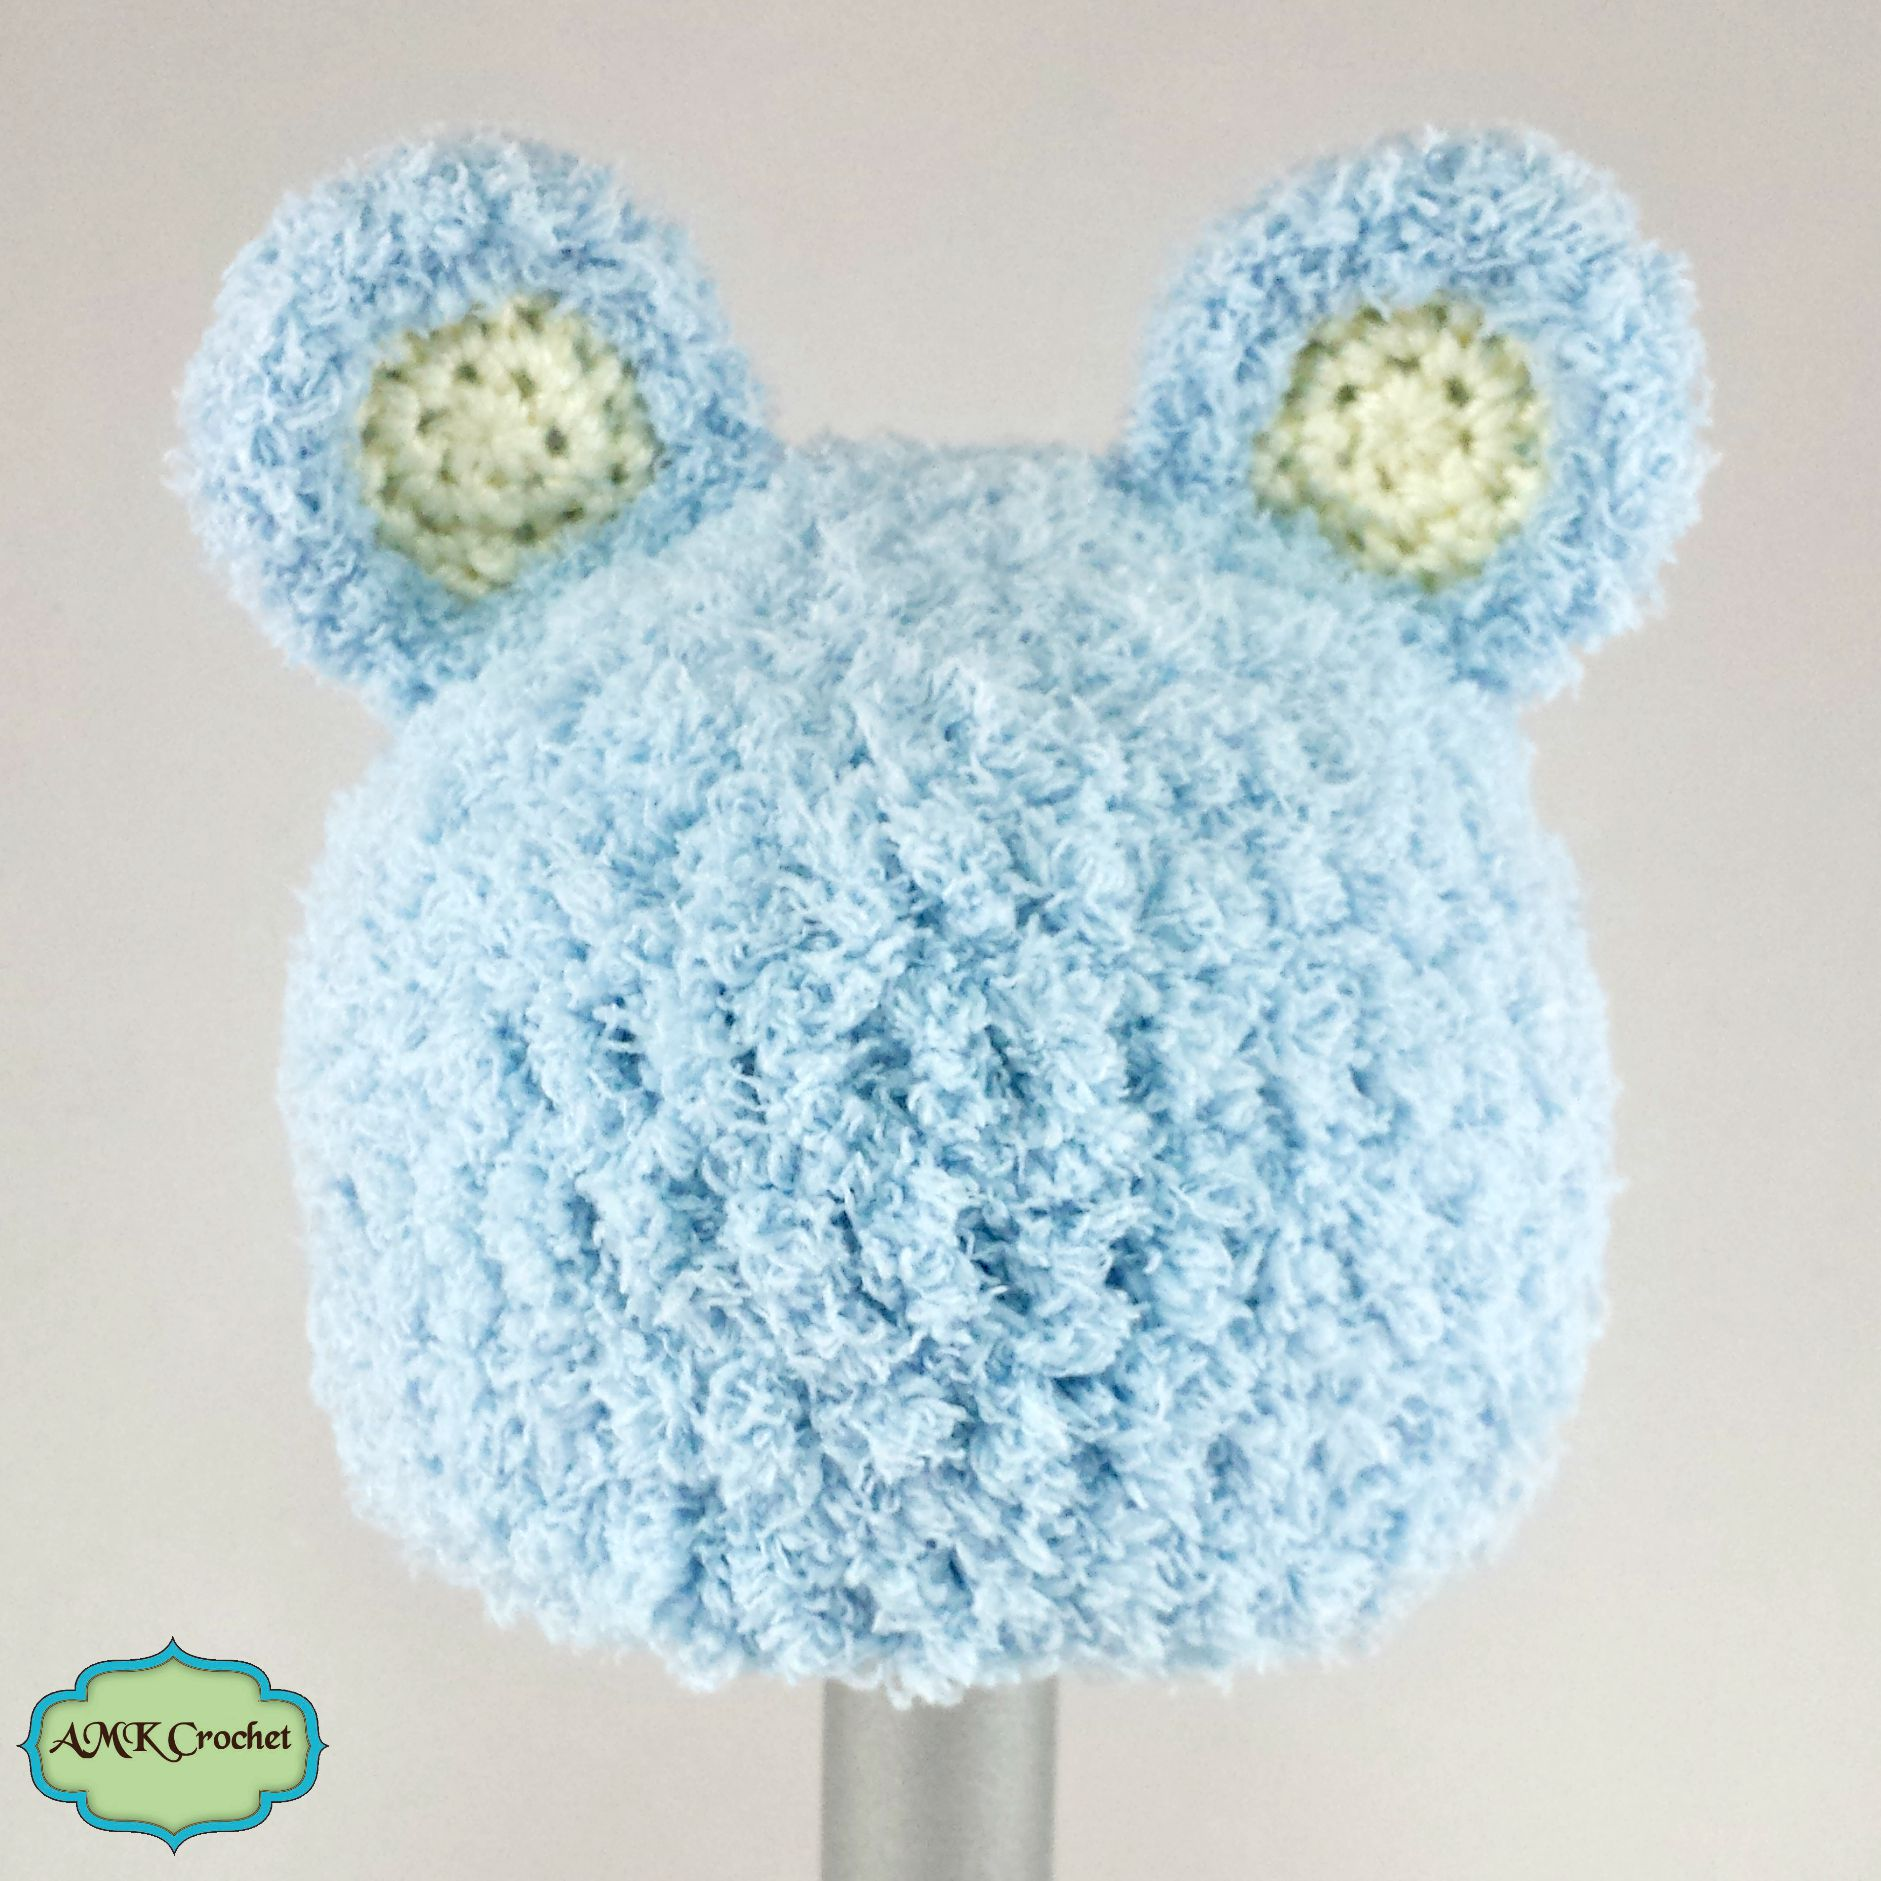 Crochet Pattern Baby Hat Bulky Yarn : Crochet Tips, Tricks, Photo Tutorials, and Crochet Patterns